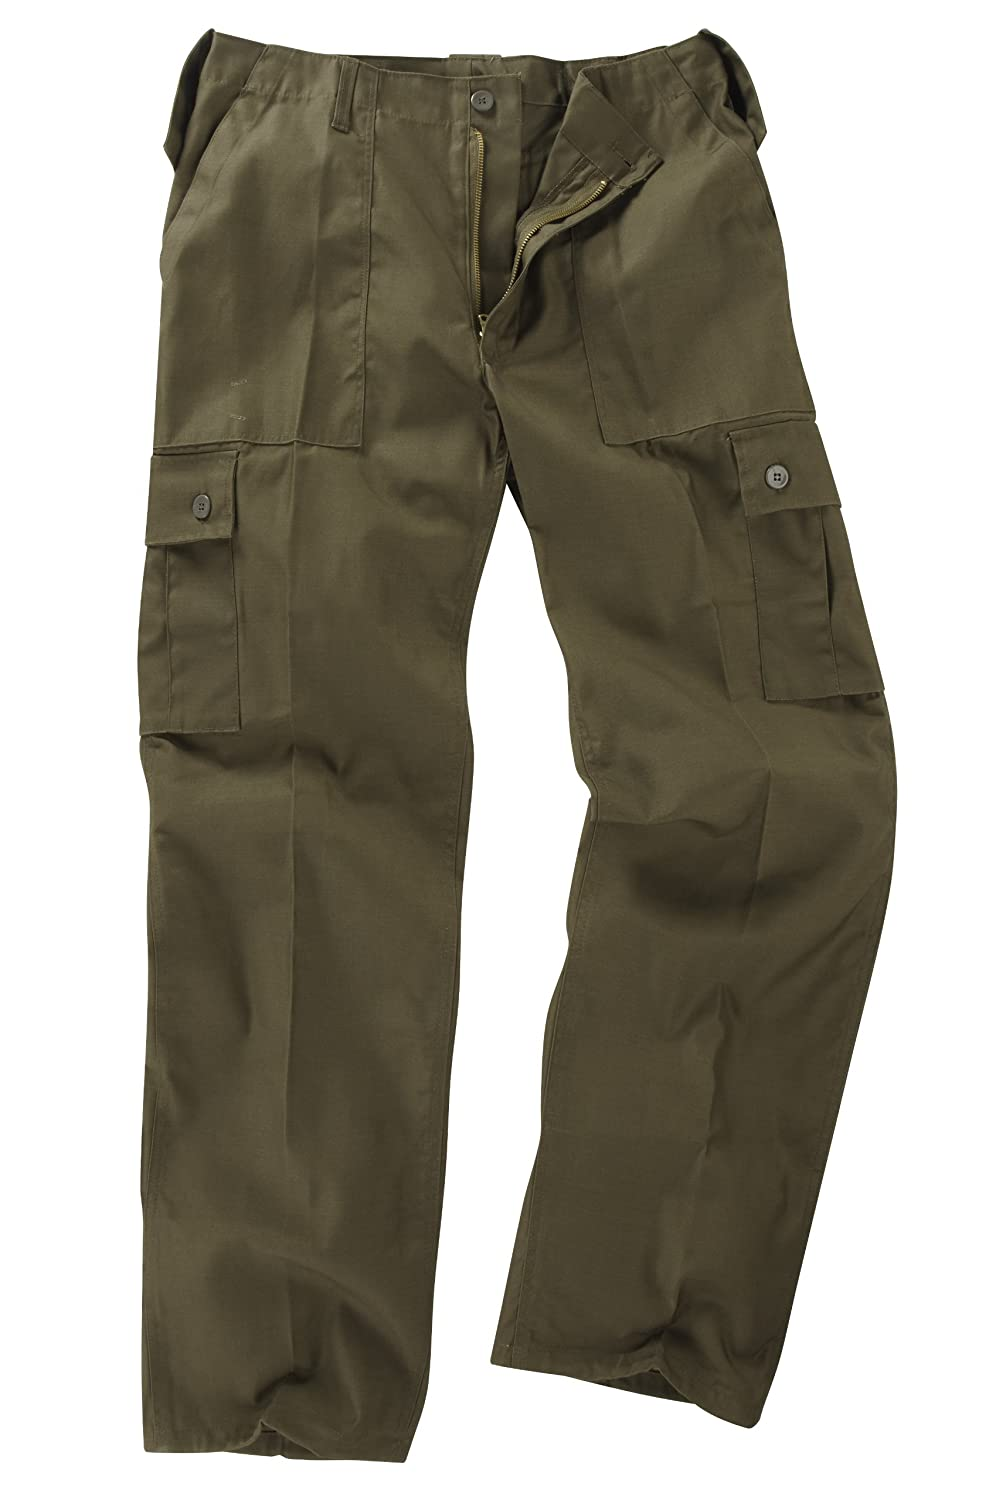 6 Pocket Basic Combat Cargo Trousers